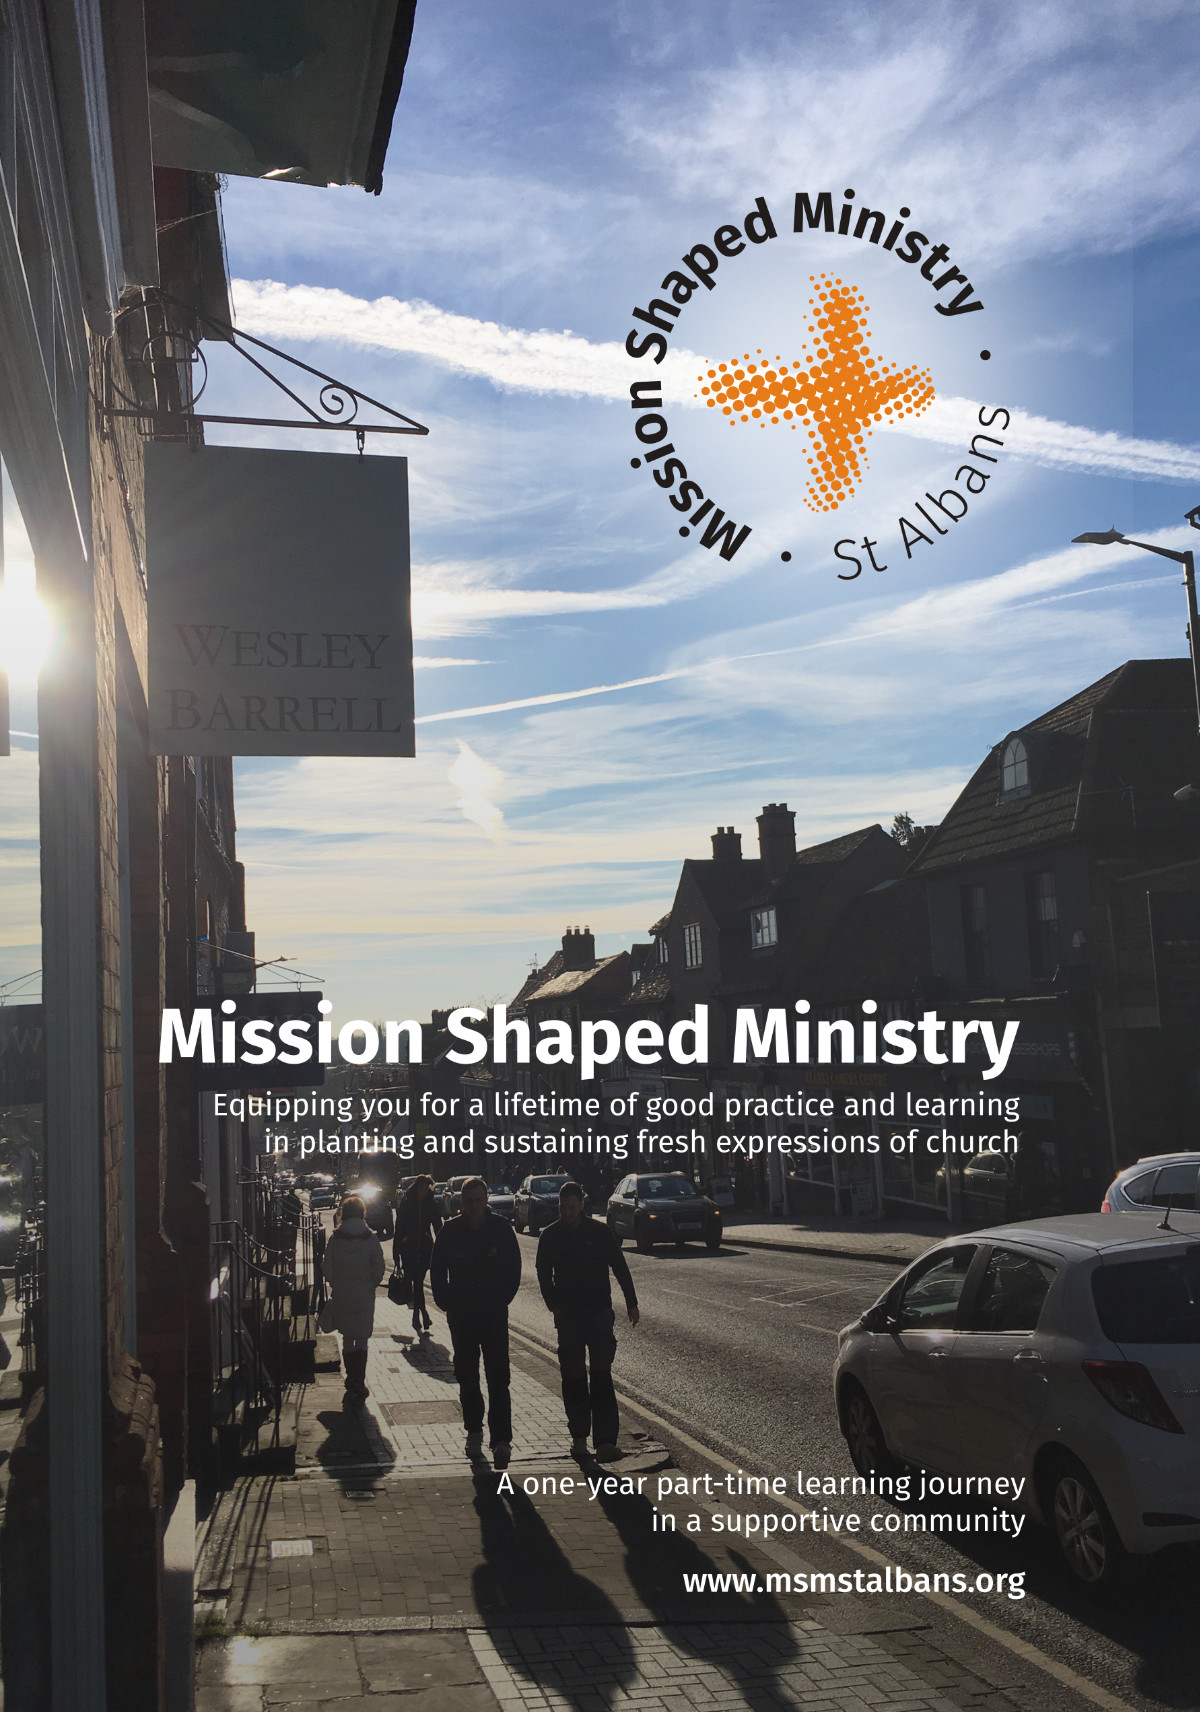 Mission Shaped Ministry | St Albans